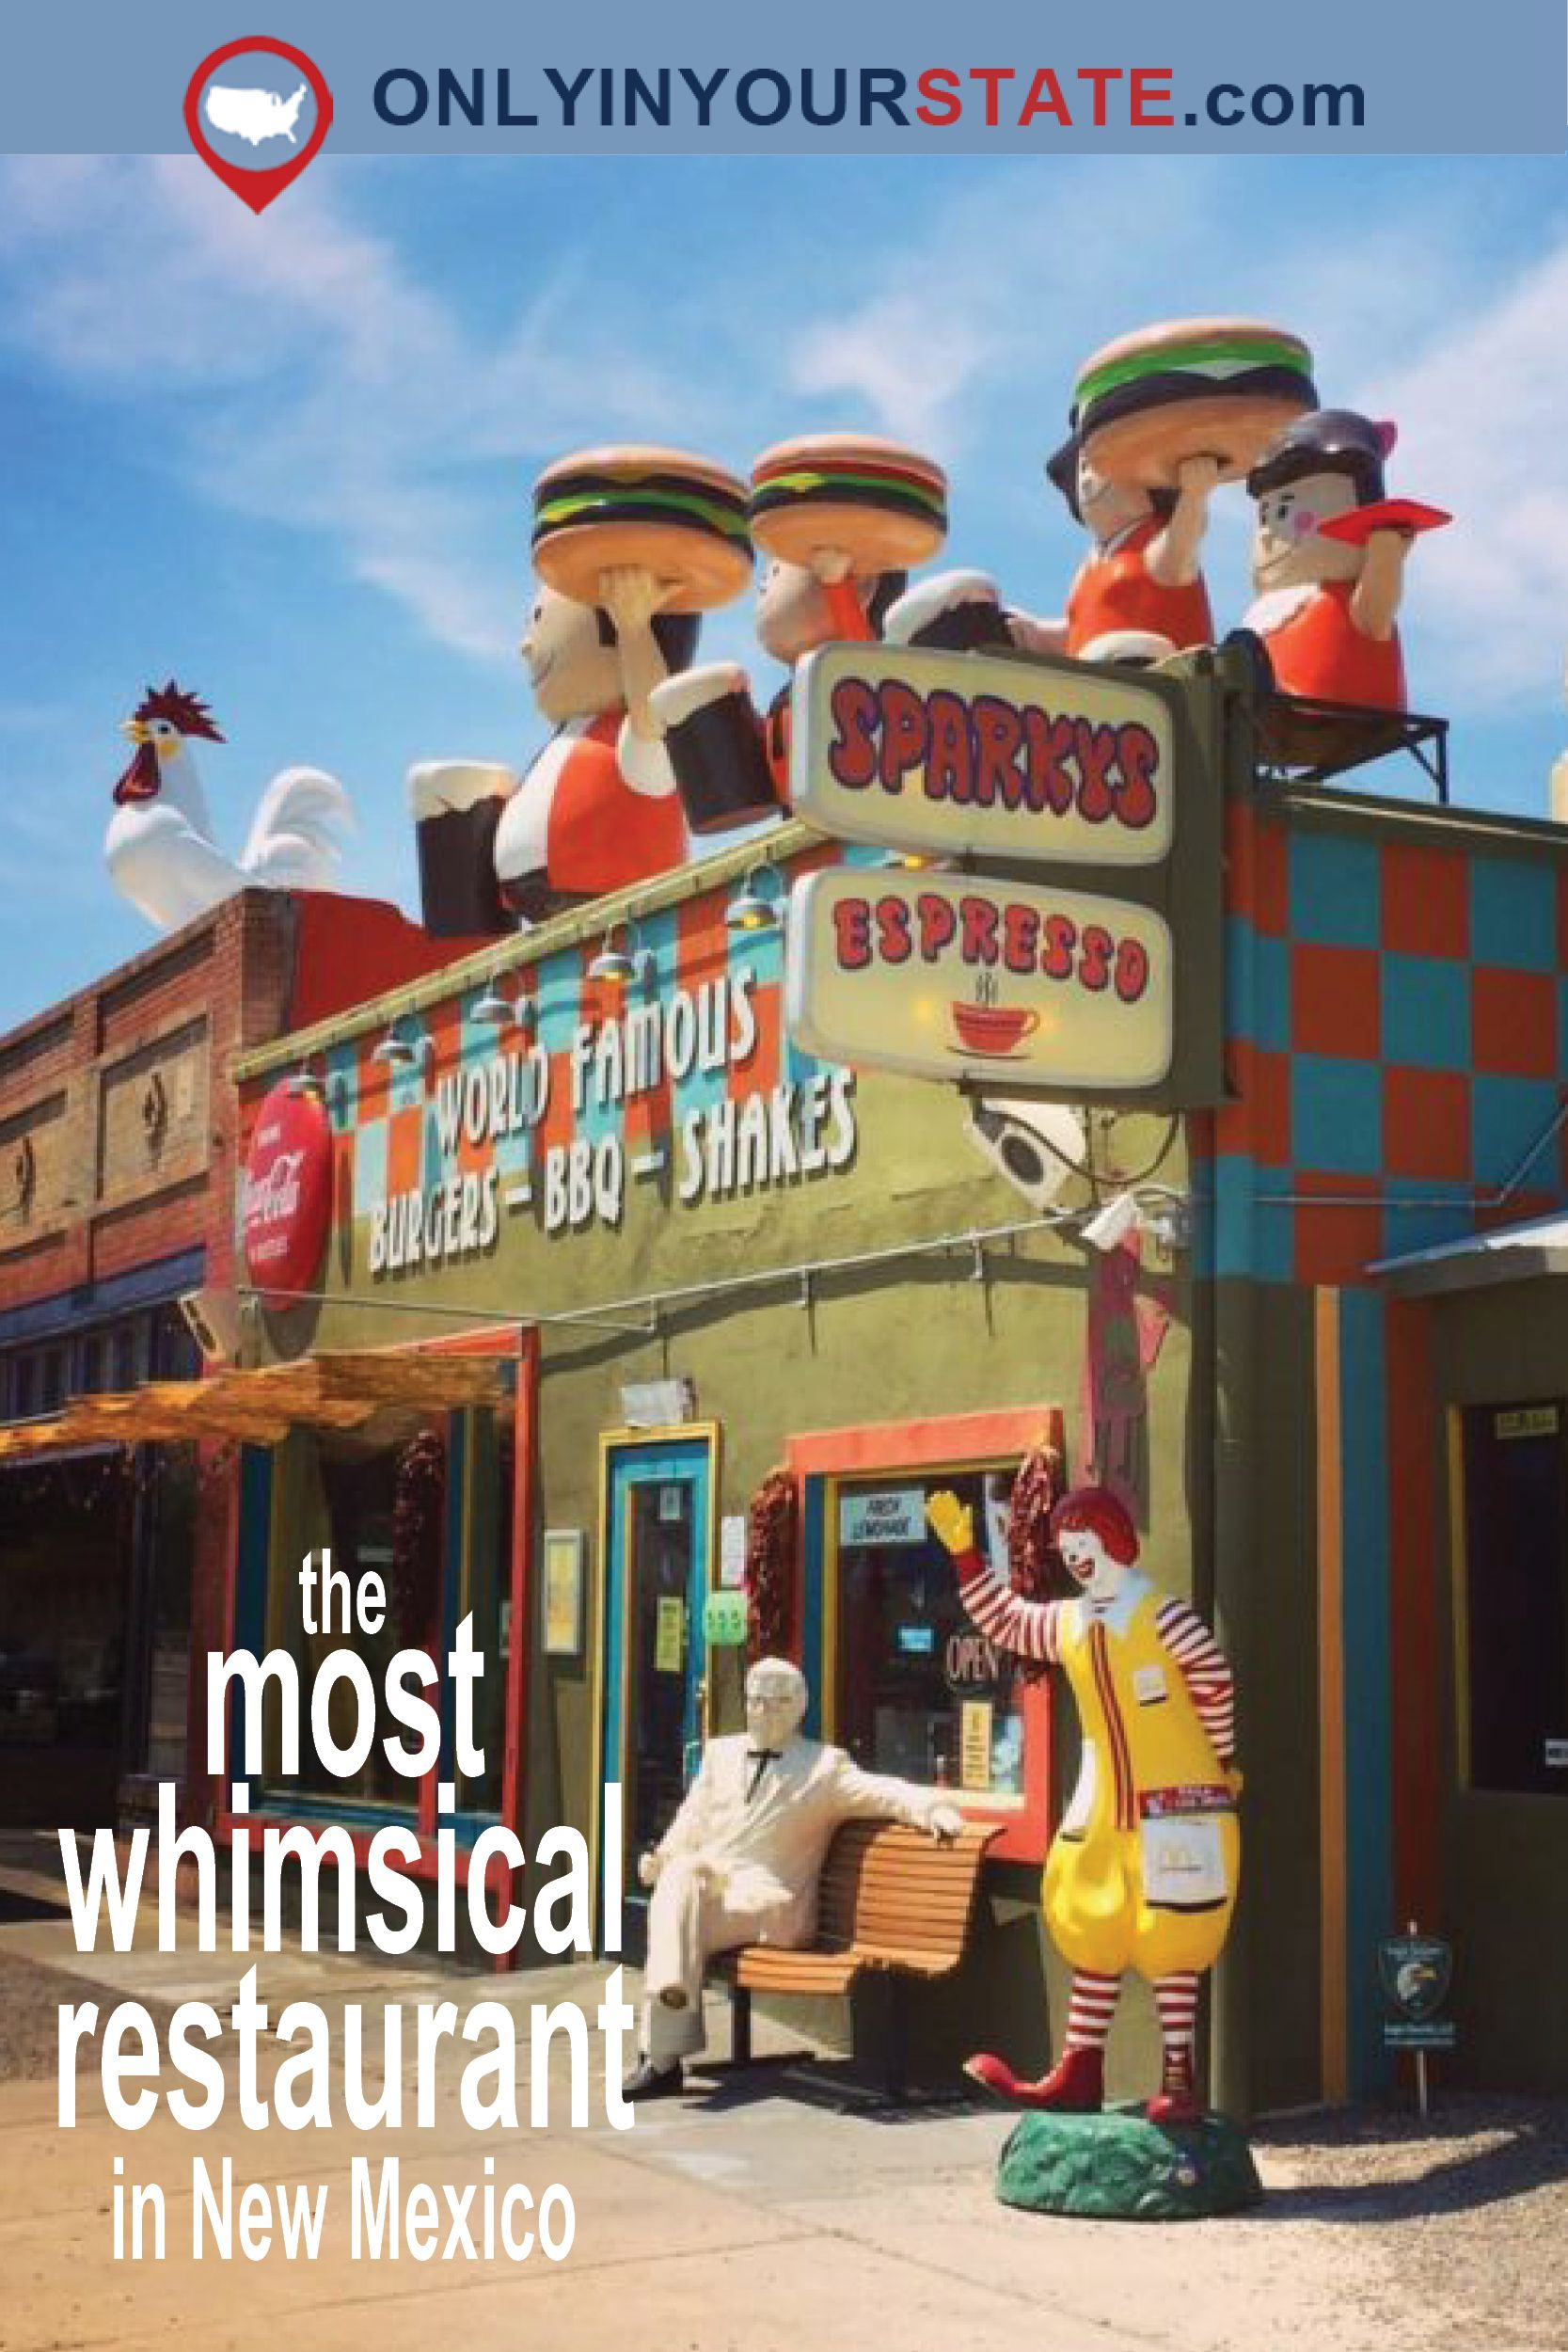 Travel New Mexico Restaurants Quirky Whimsical Places To Eat Bizarre Attractions Roadside Things Do